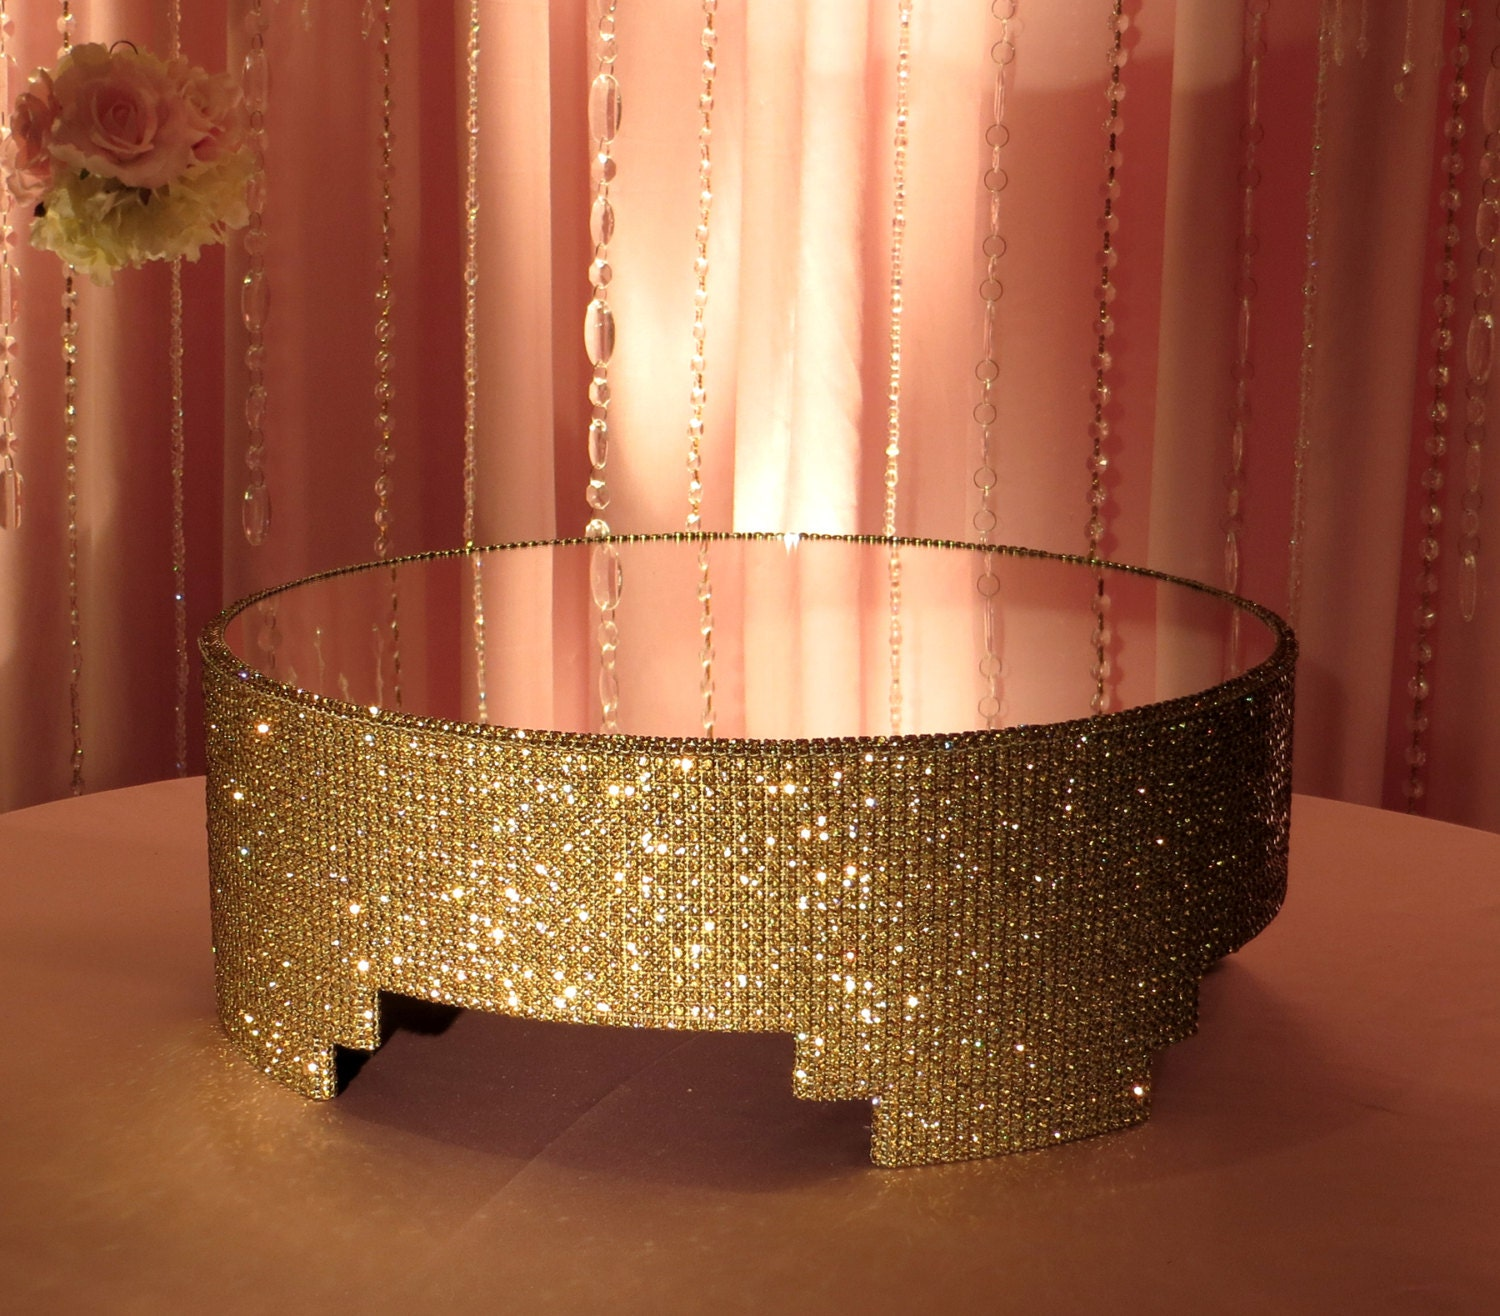 16 Round Gold Crystal Covered Cake Stand